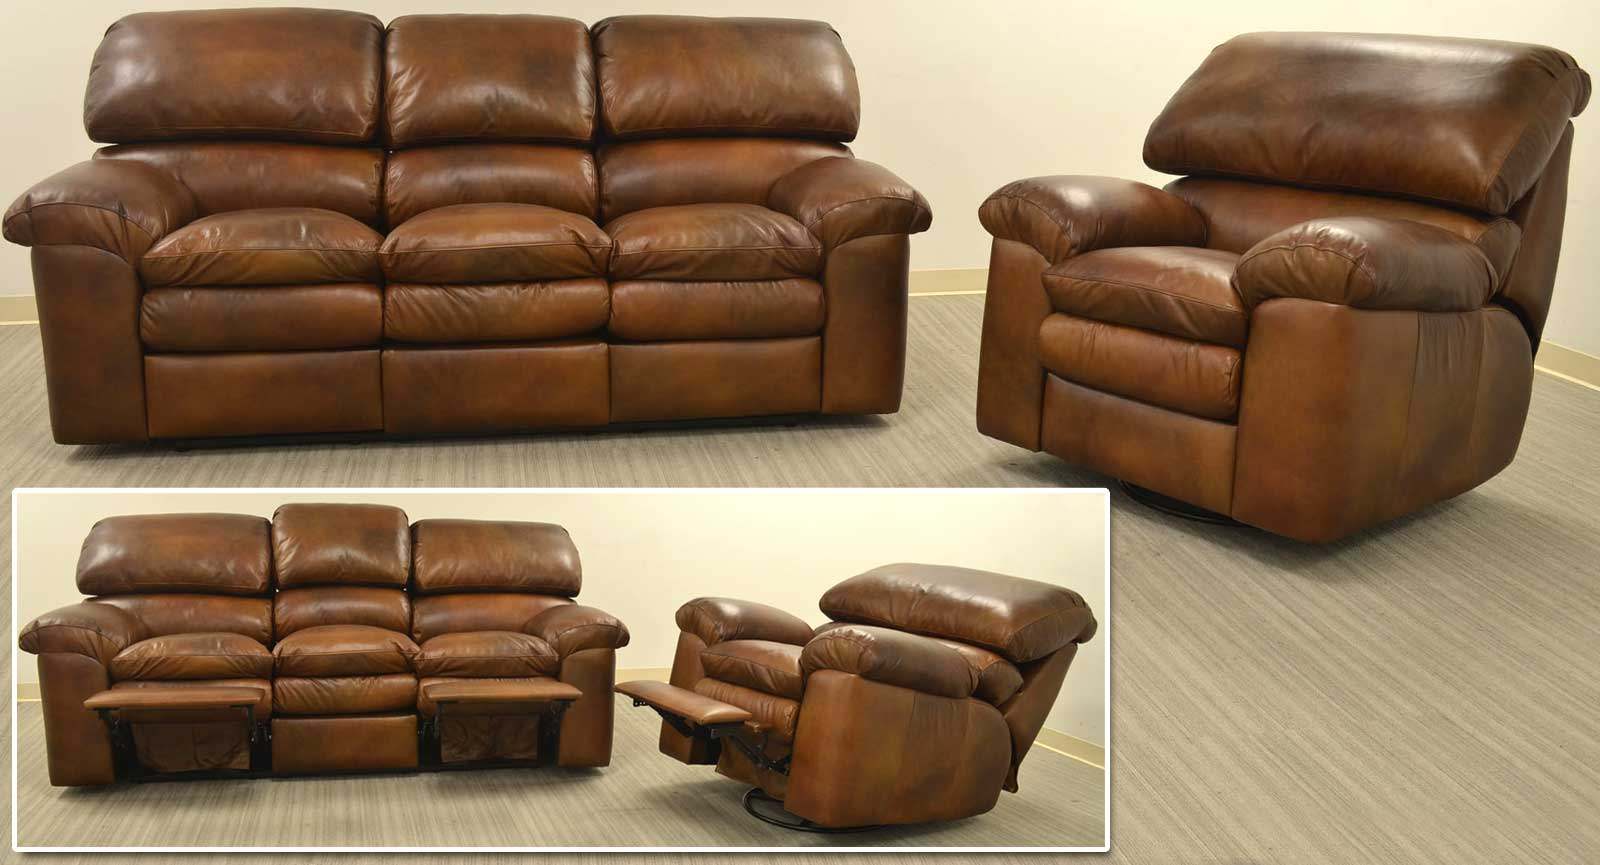 Sofa With 2 Incliners Swivel Glider Recliner